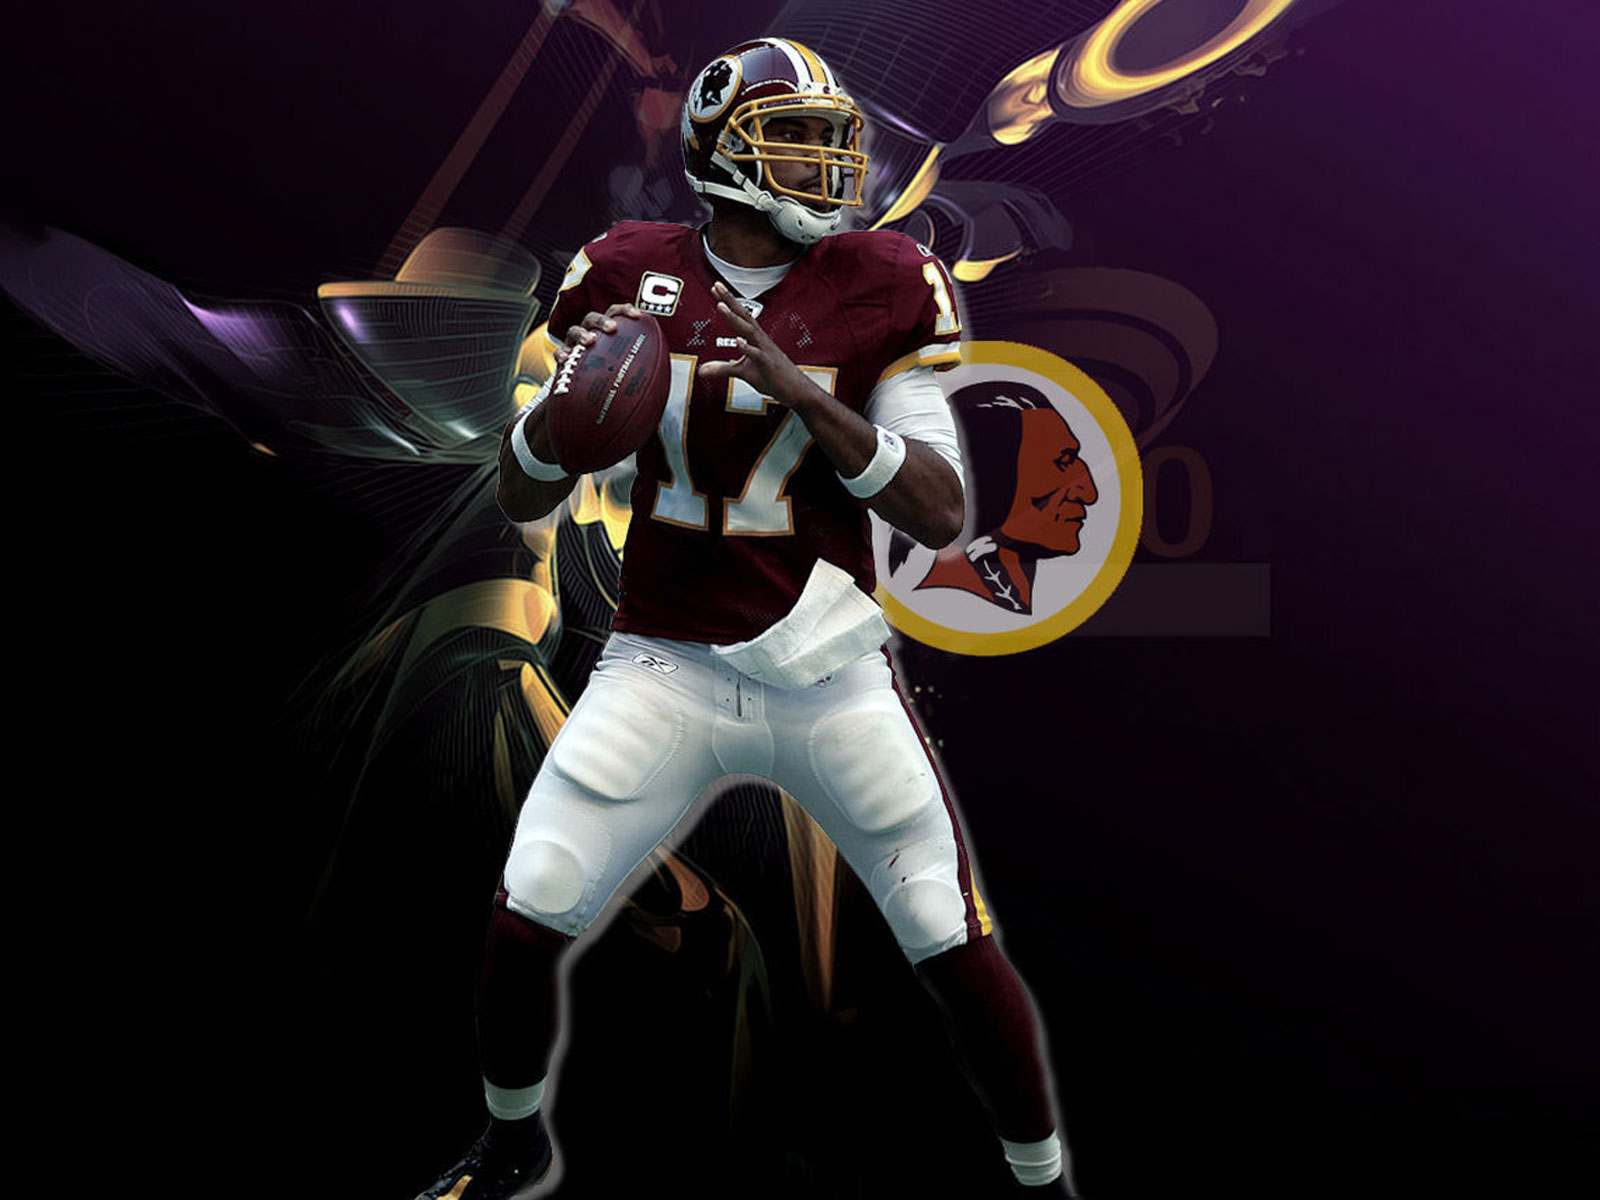 Nfl Football Players Cool 1080x1080: Cool American Football Wallpapers